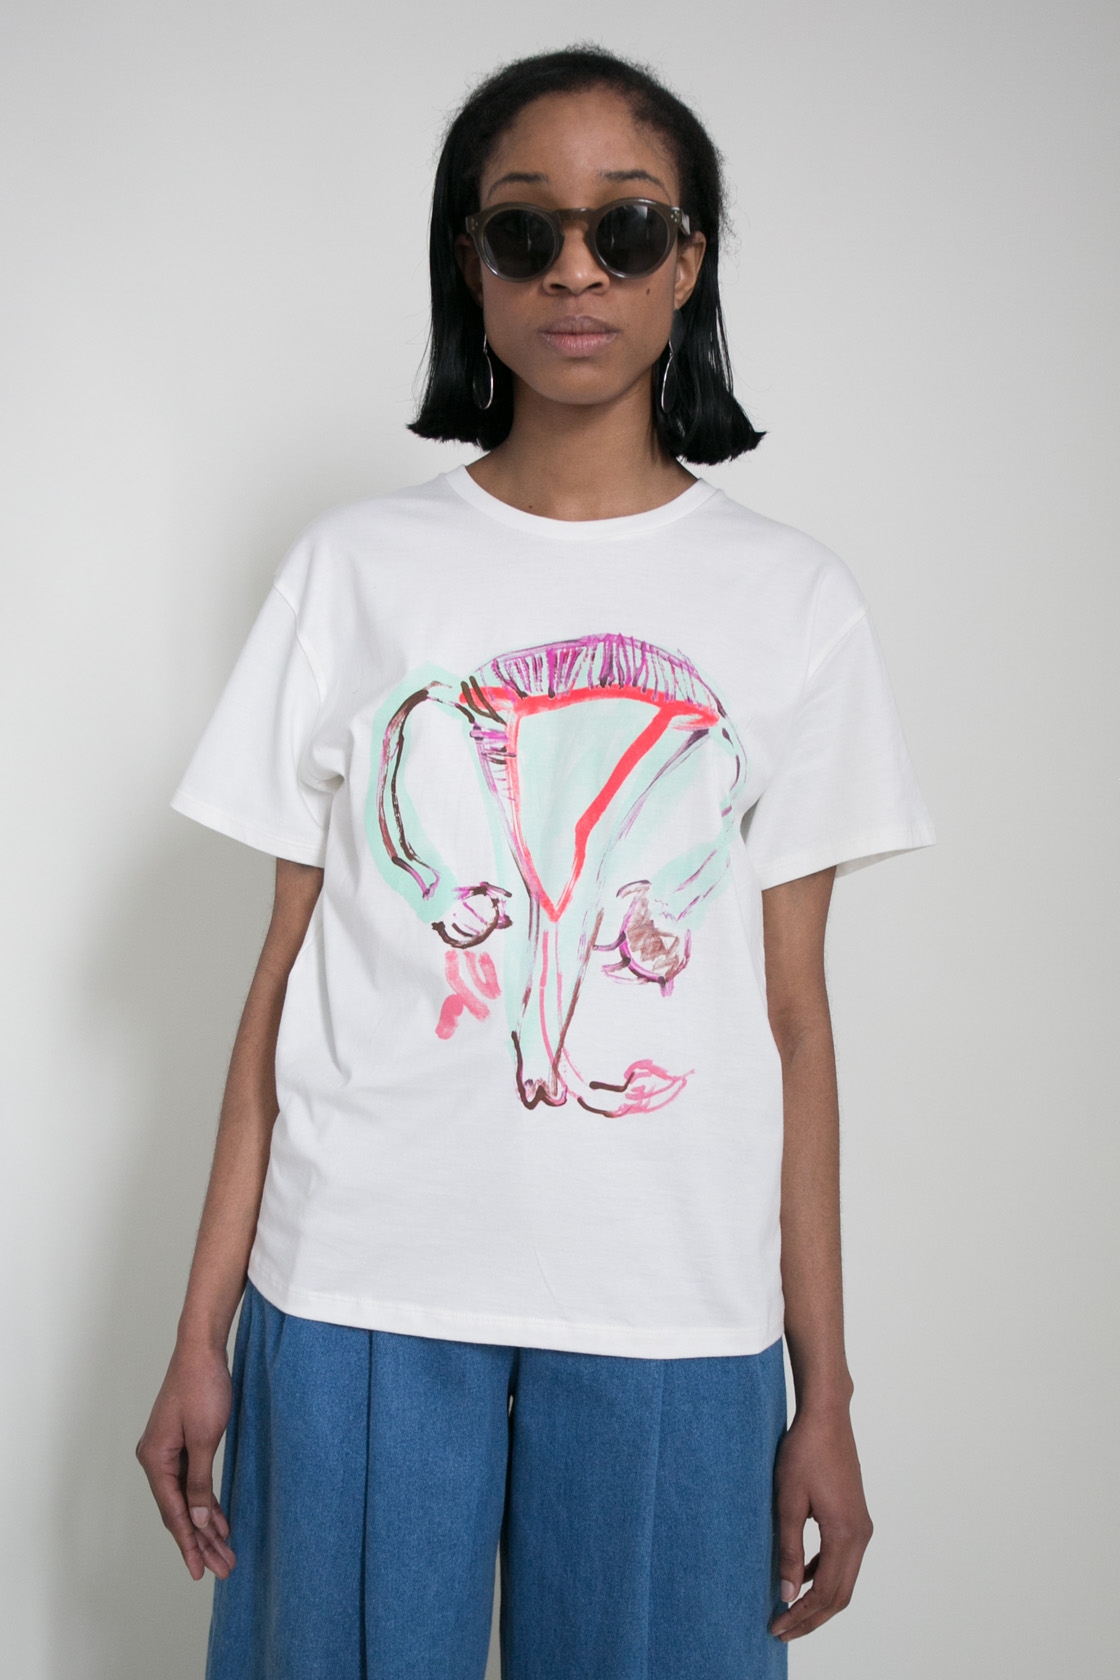 Ovaries T One  XS S M L  $75